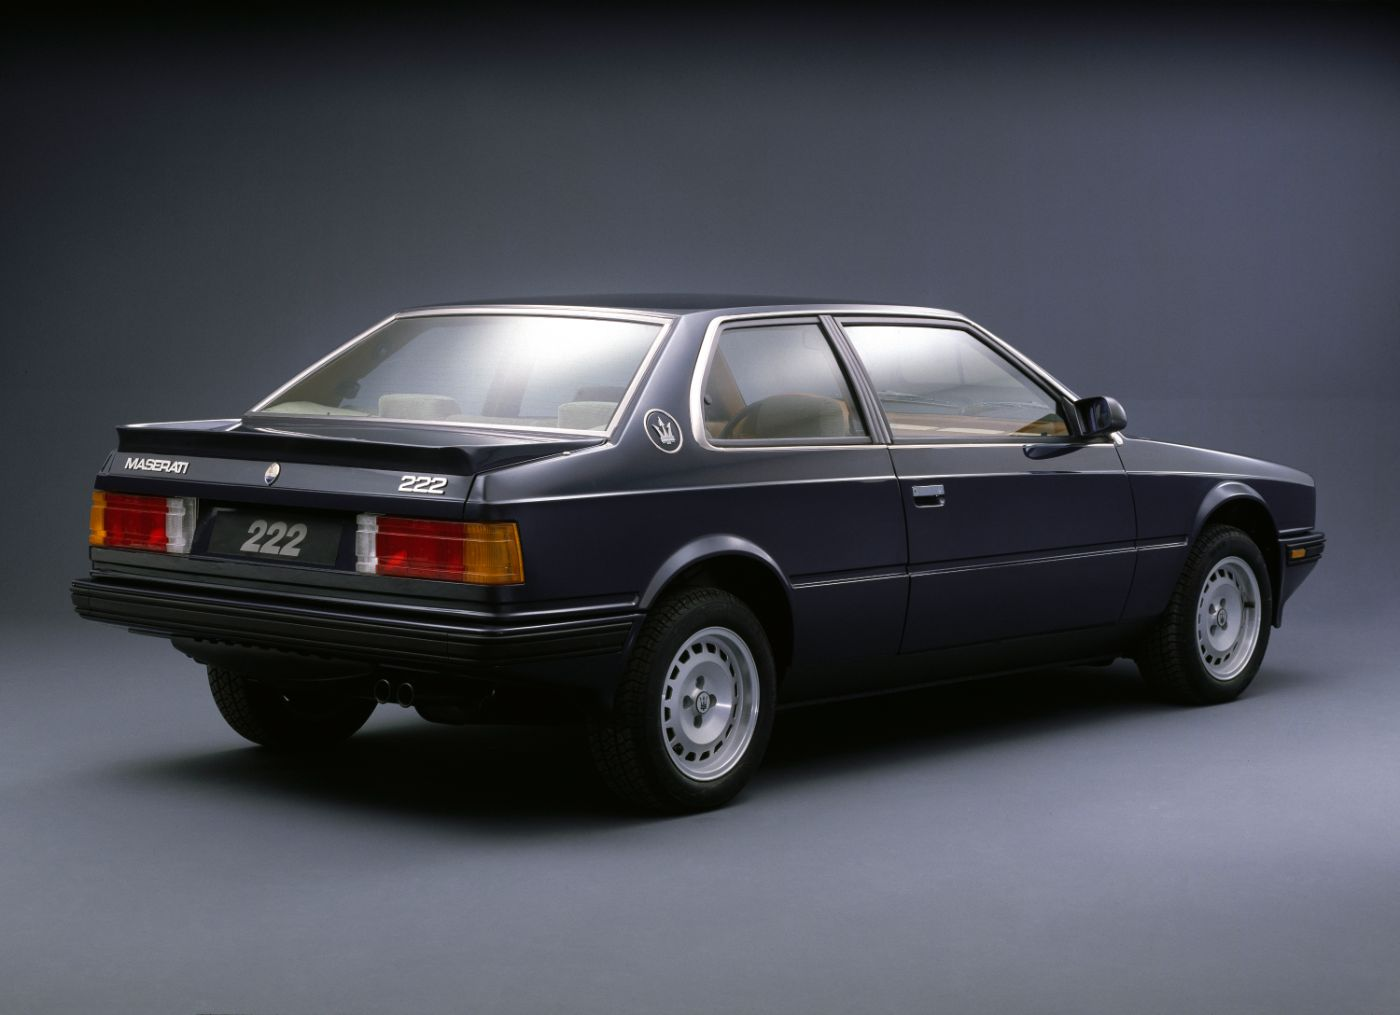 1989 Maserati 222 - Biturbo - the classic 2-door rear view